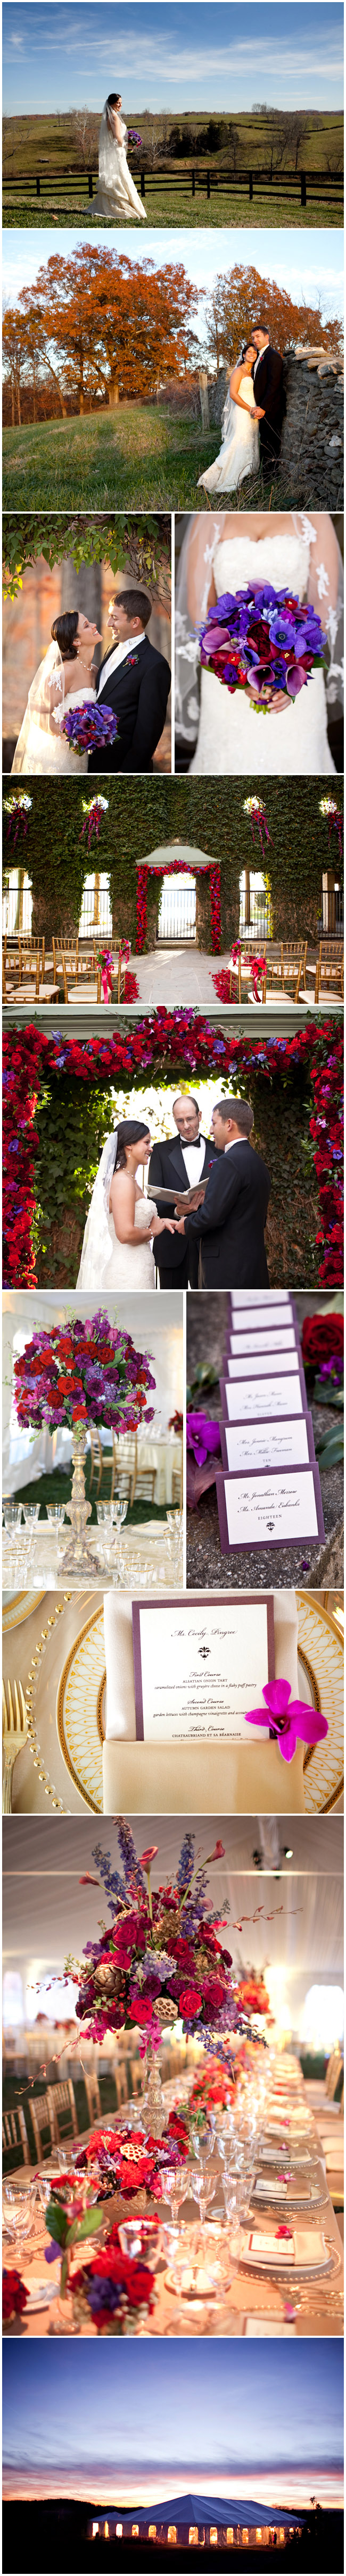 Vibrant and vivacious, this autumnal wedding was bursting with the season's most jewel-like tones.  Purples and reds decked every beam and graced the dining tables as elevated designs.  A custom-designed archway of exquisite blooms created an alluring and picturesque frame for the moment the bride and groom said a heartfelt, 'I do.'  Every glimmering detail of this event is a tribute to the colorful beauty of the Goodstone Inn estate, no matter the season. Photos by Genevieve Leiper.